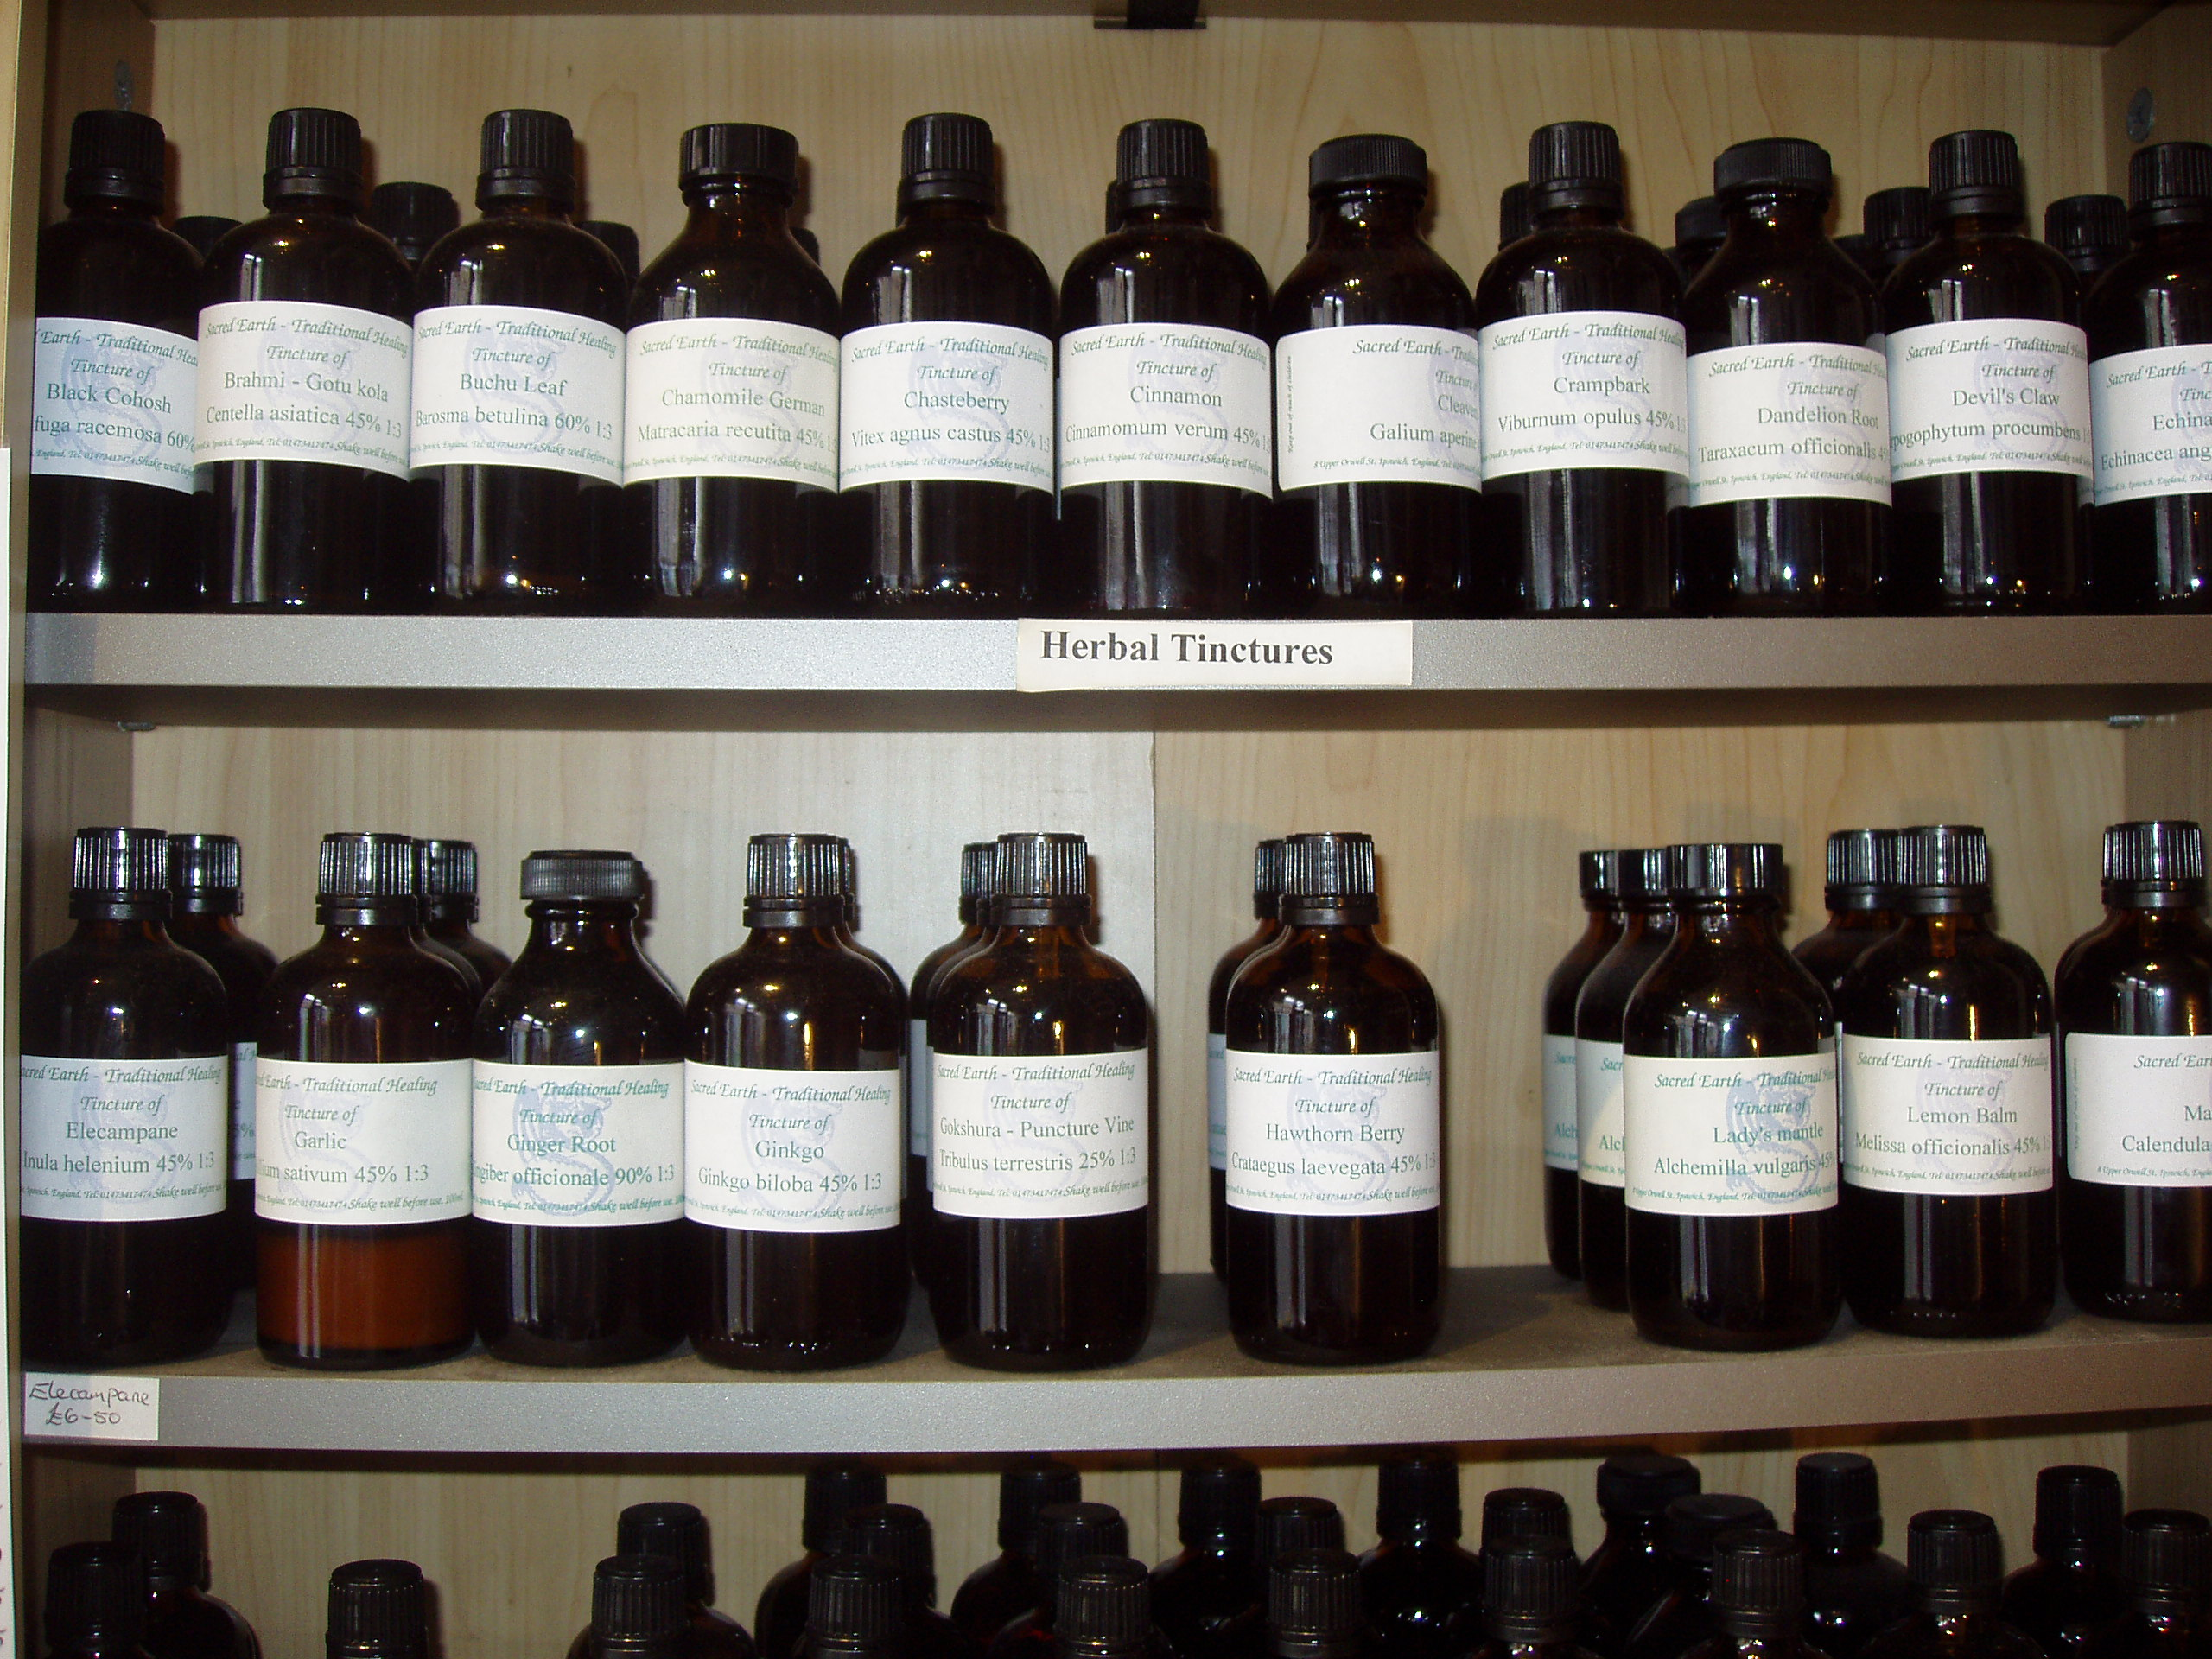 Herbal Tinctures - Vervain herb